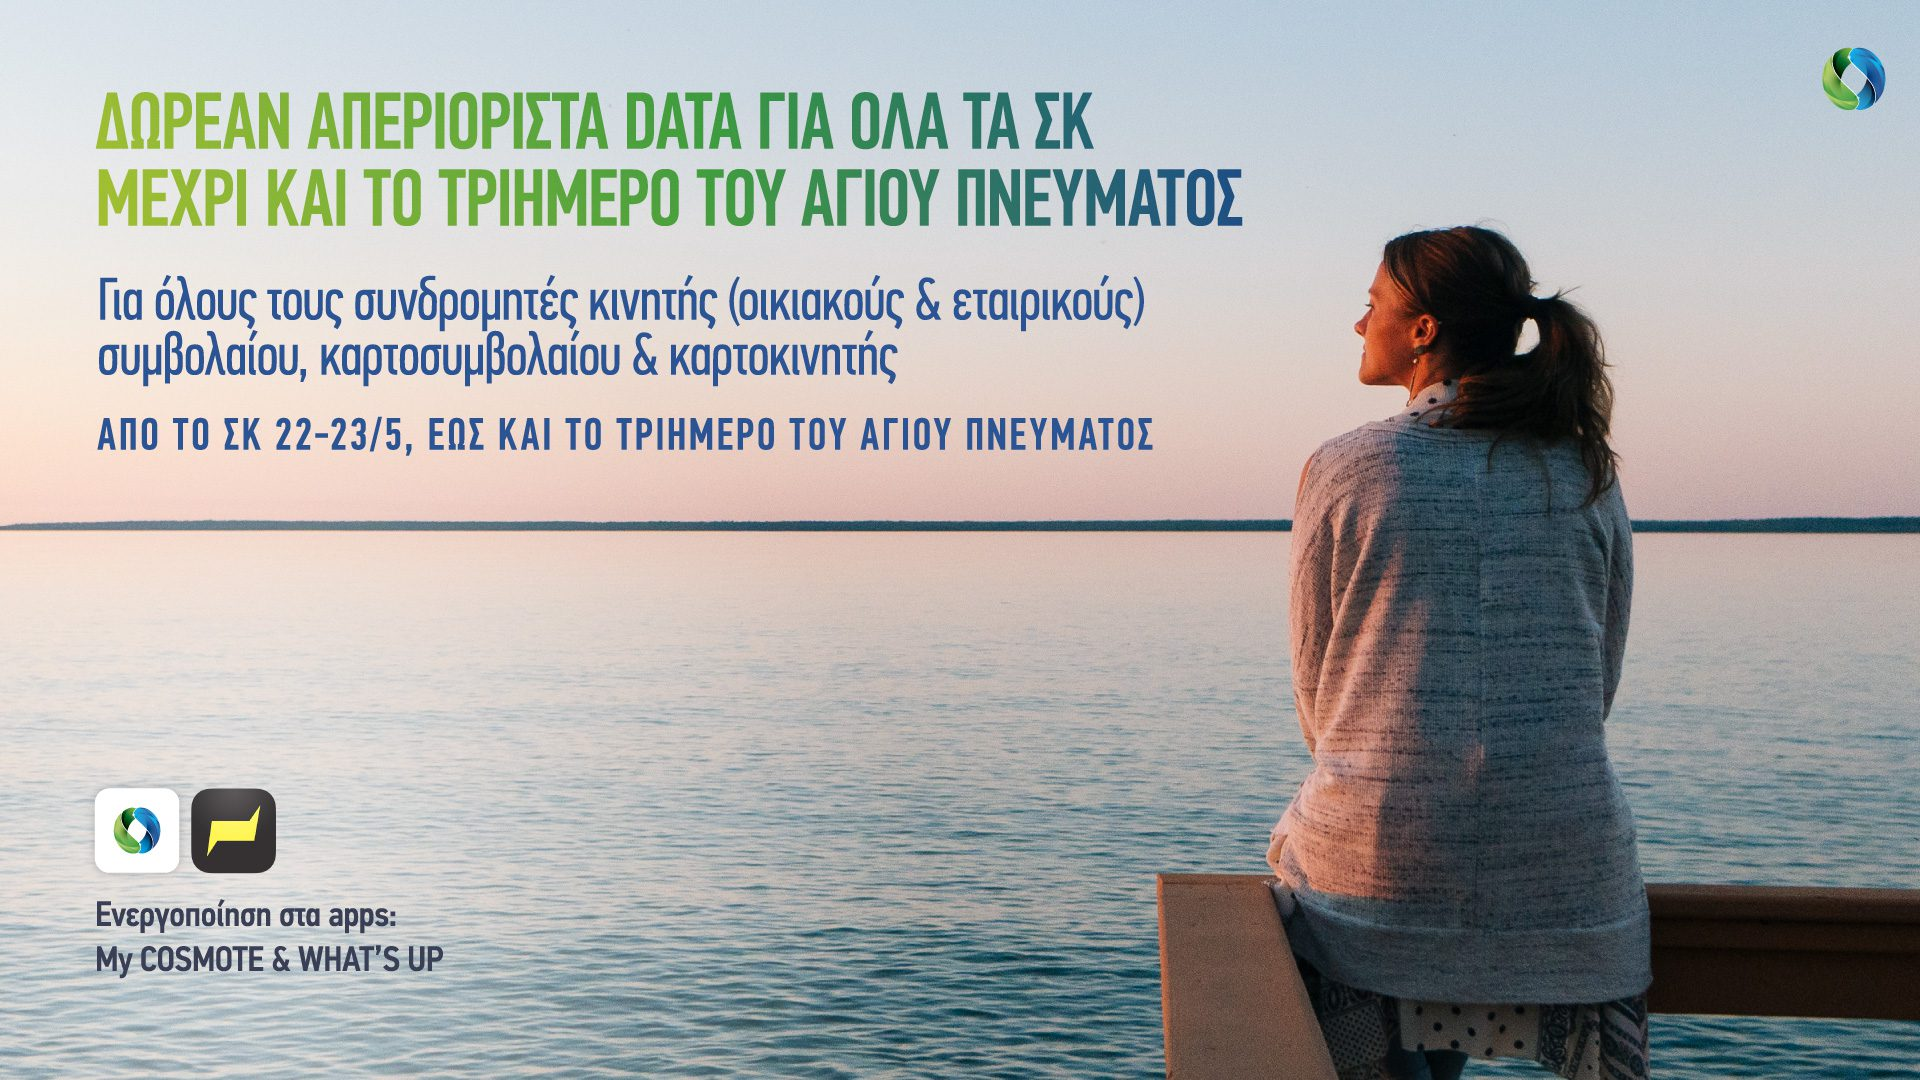 COSMOTE Unlimited Data Offer